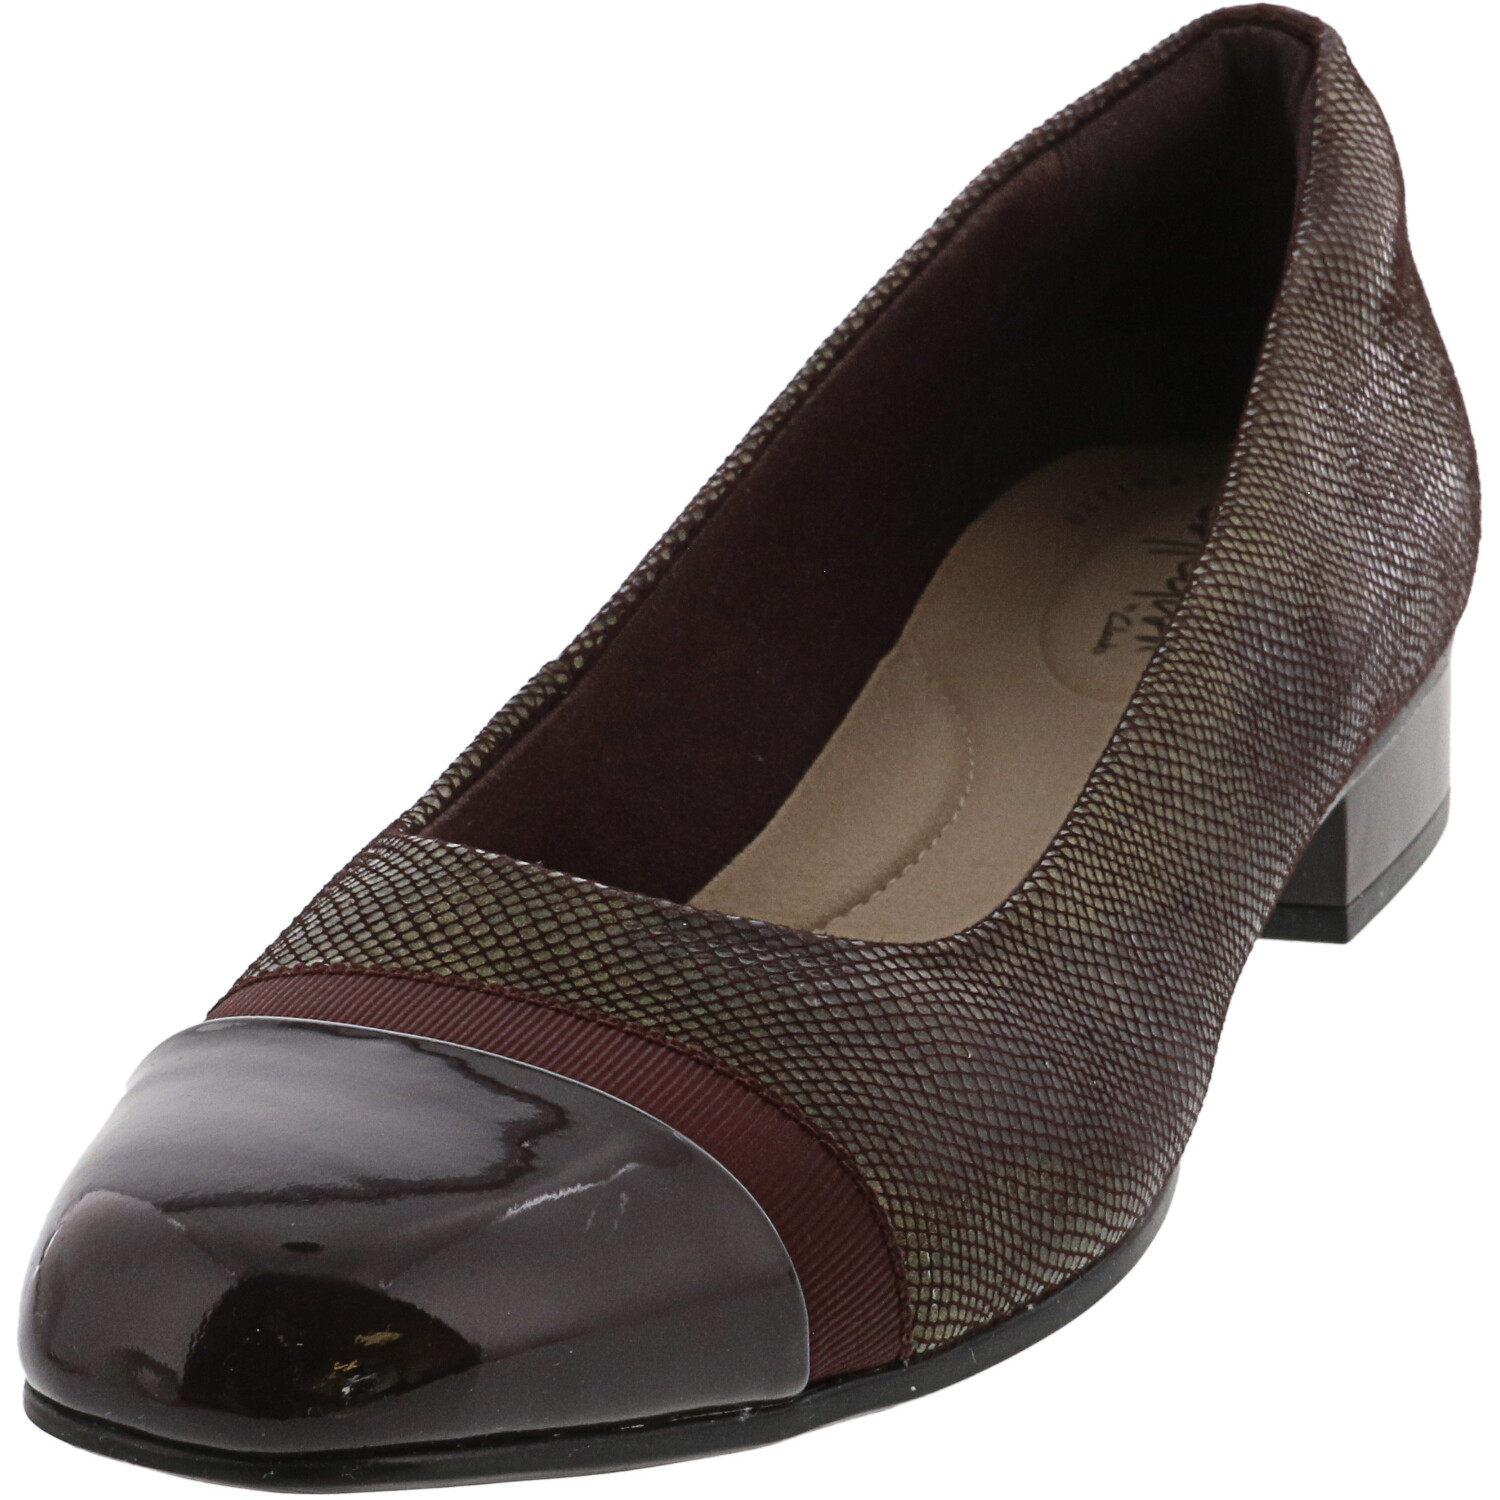 Clarks Women's Juliet Monte Burgundy Ankle-High Leather Loafers & Slip-On - 9.5N